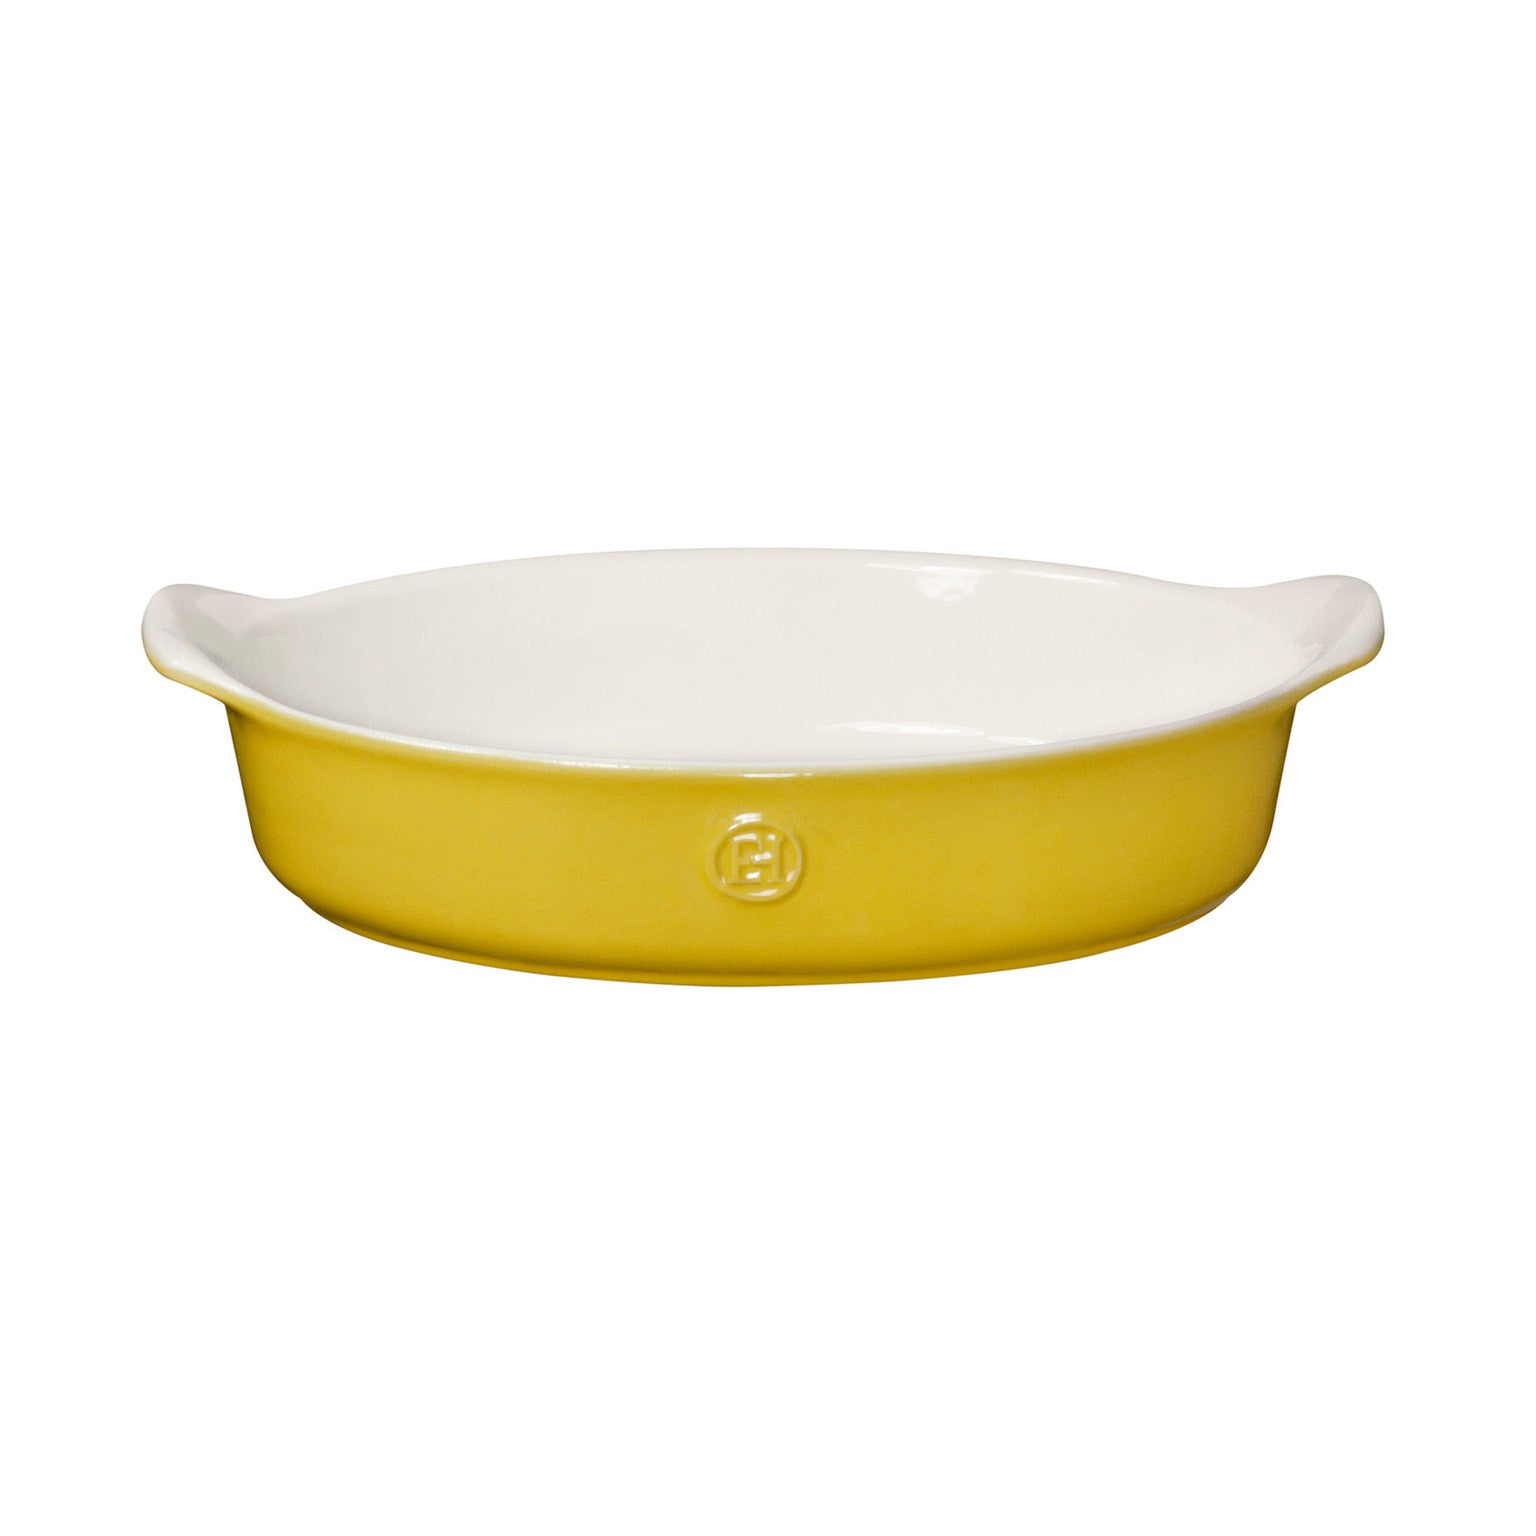 Oval baking dish (2.8L) - Leaves